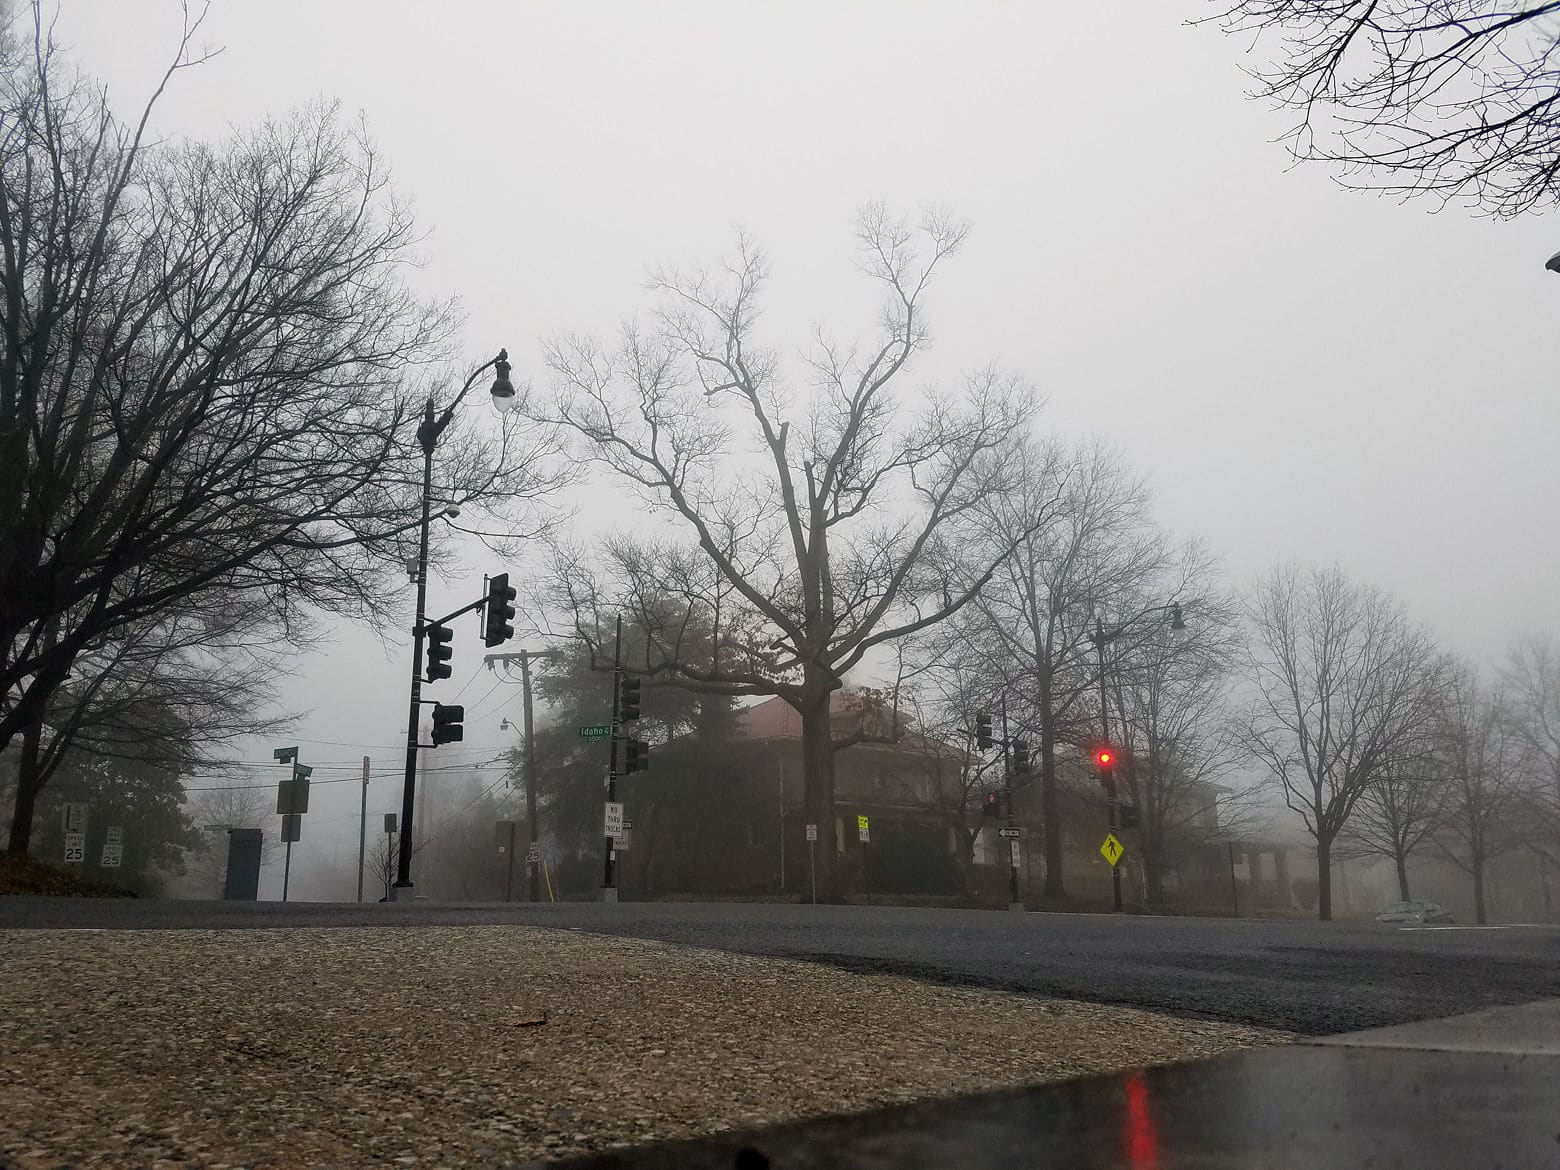 Fog greeted residents around the area early Saturday morning. (WTOP/Will Vitka)